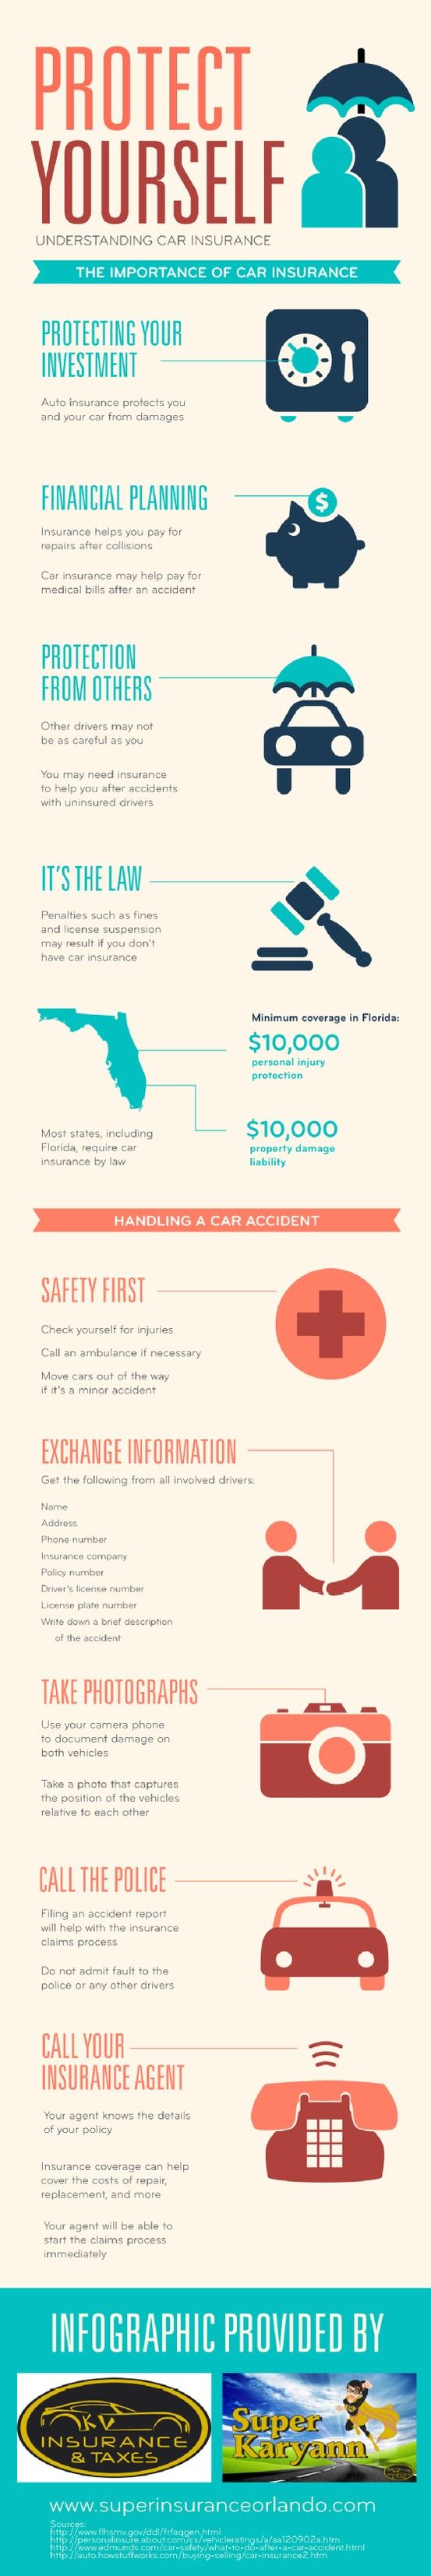 Excellent 60 Best Images About Insurance Infograpics On Pinterest